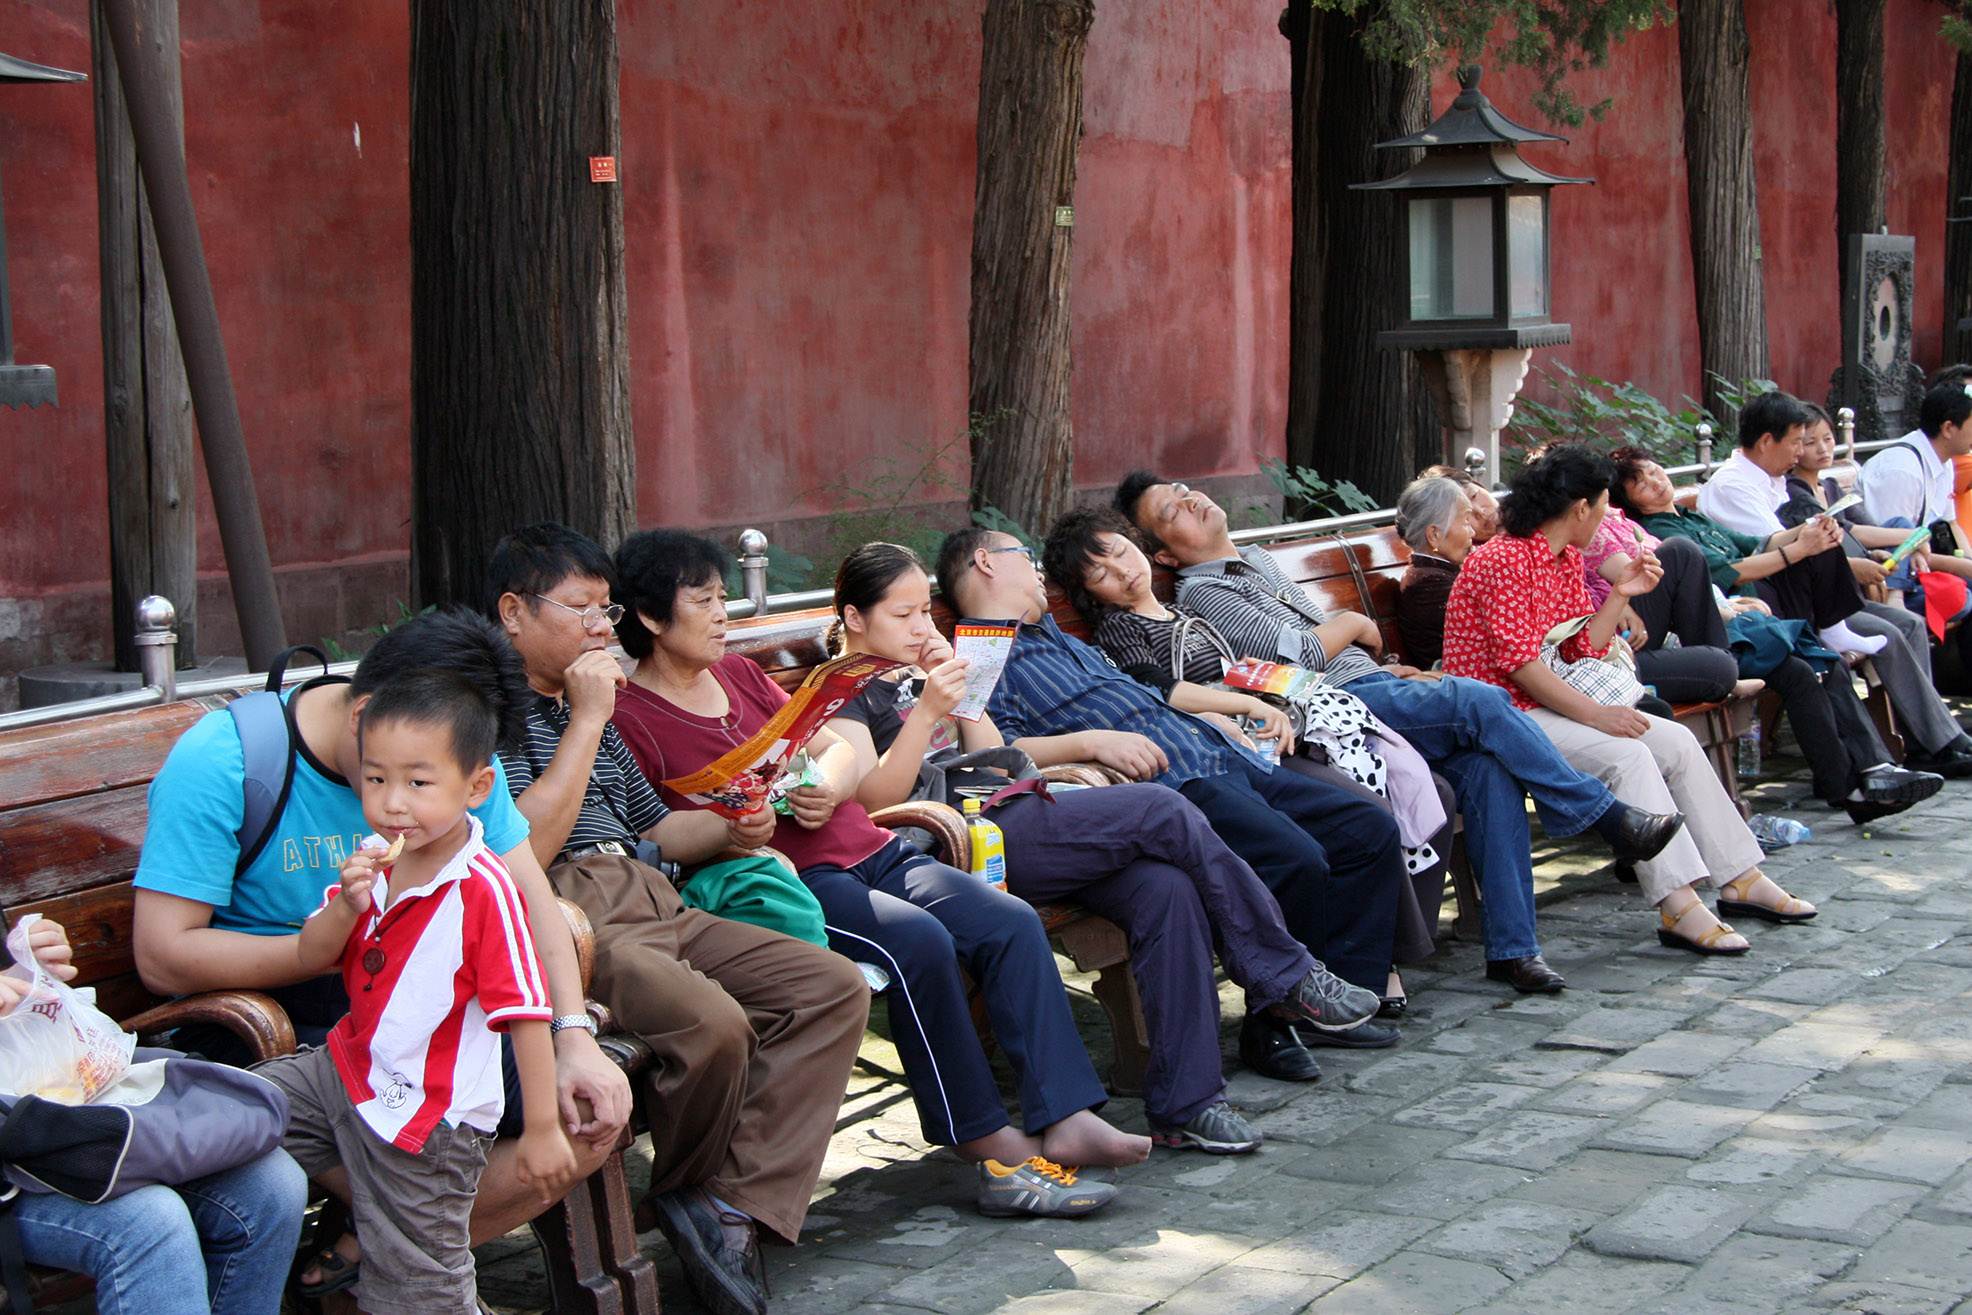 Forbidden_City_23.jpg - The forbidden city. Very important for chines. Take a nap...